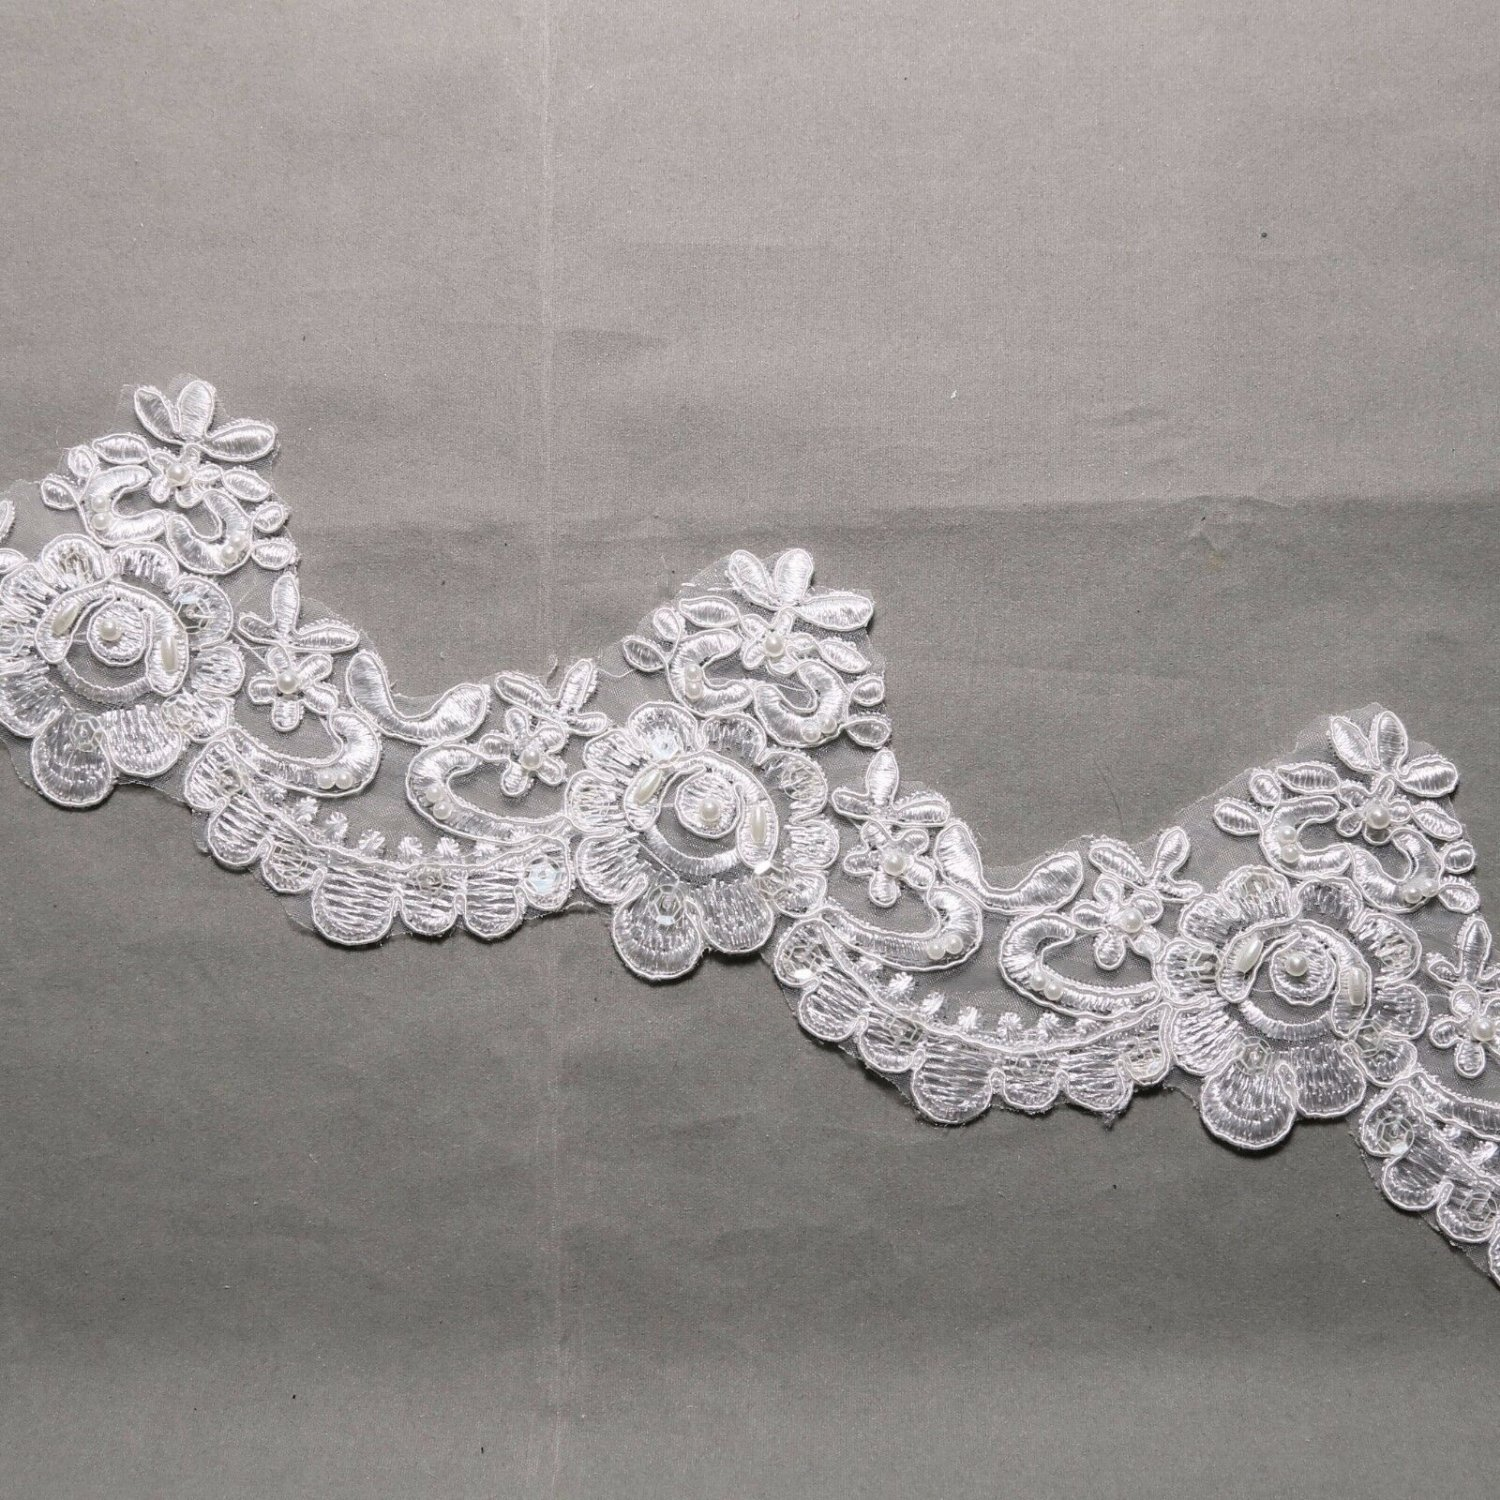 Off White Embroidered Wedding Lace Beaded Pearl Sequin Veil Trim Per Yard